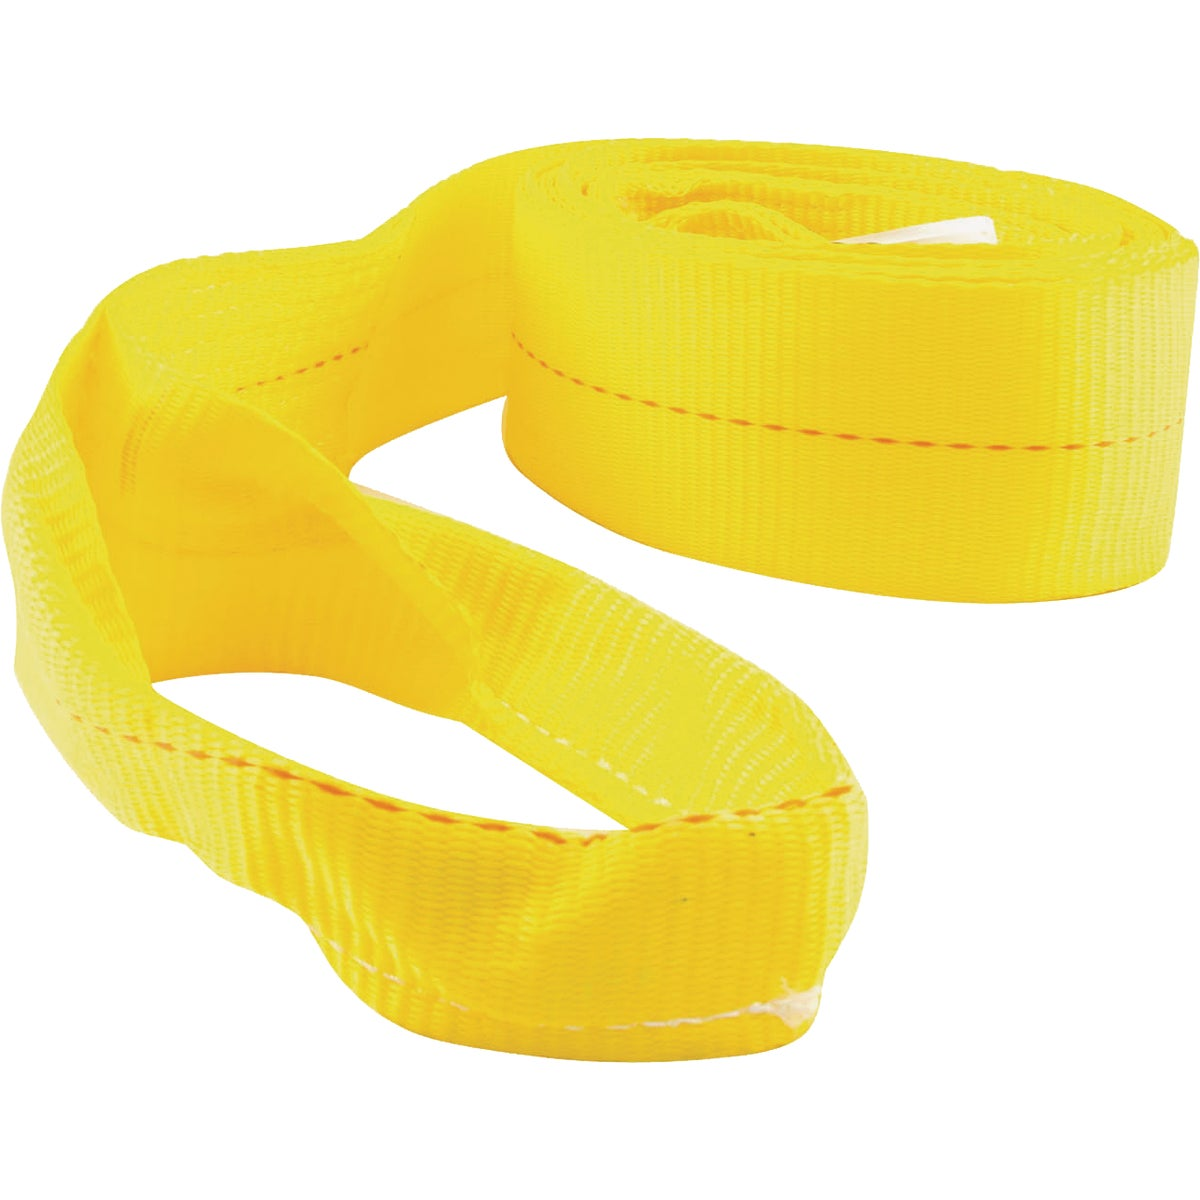 "2""X15' TOW STRAP - F14070 by Cargobuckle"